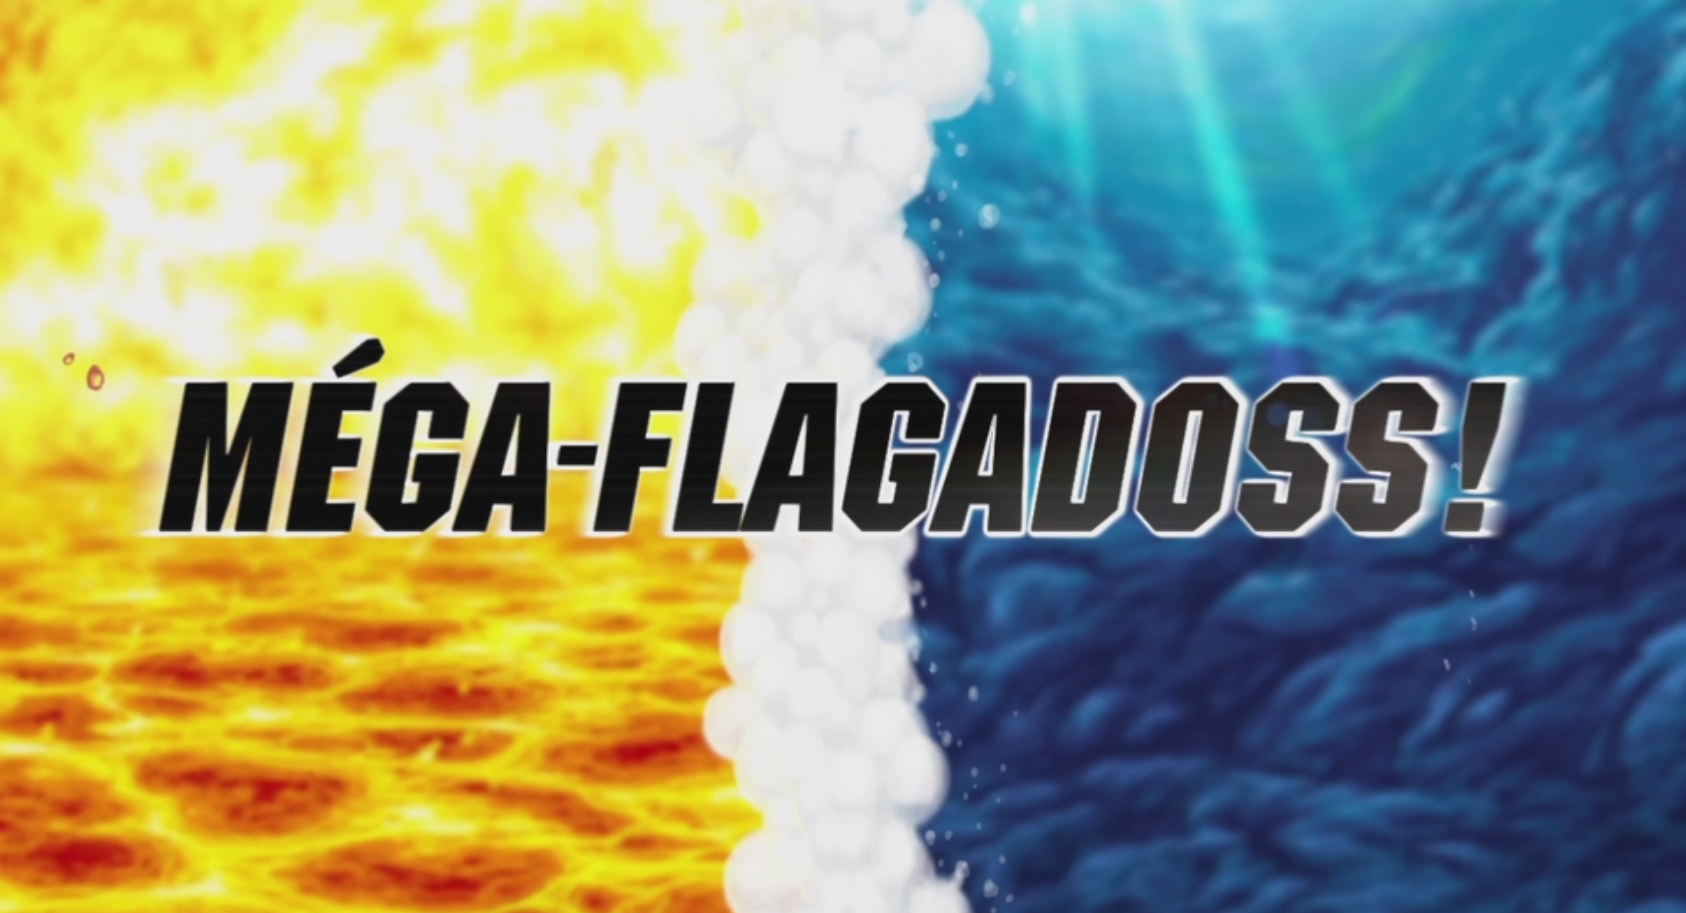 Pokemon Mega Flagadoss